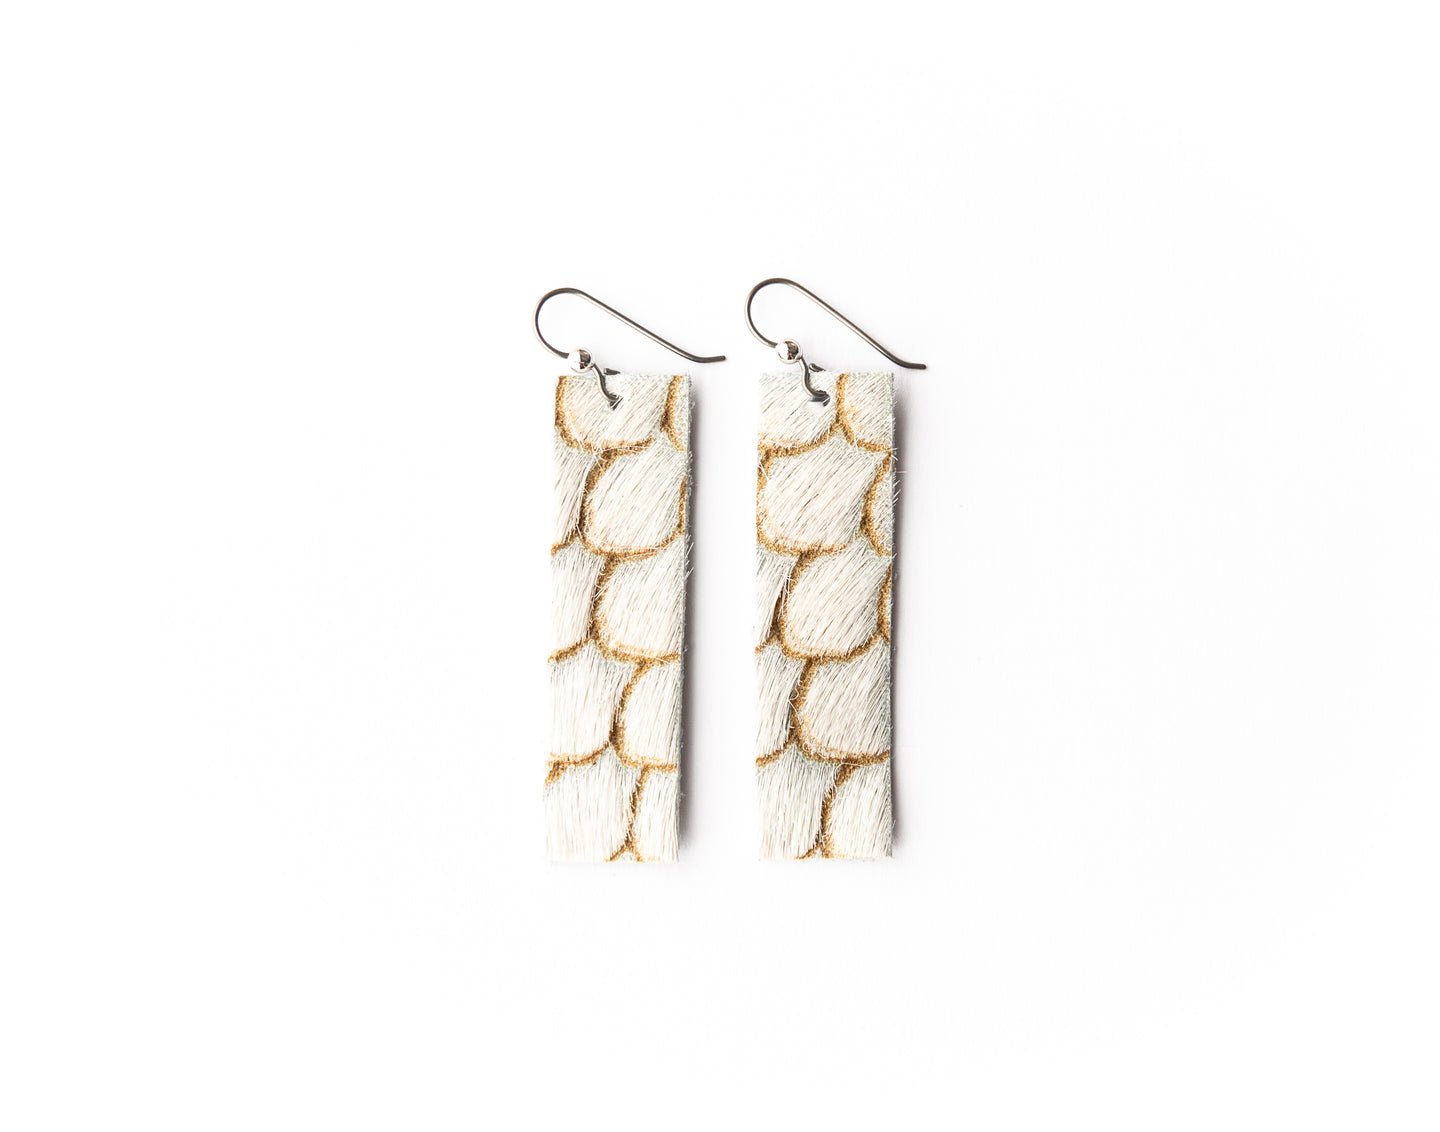 Scalloped in Cream and Taupe Four Corners Leather Earrings